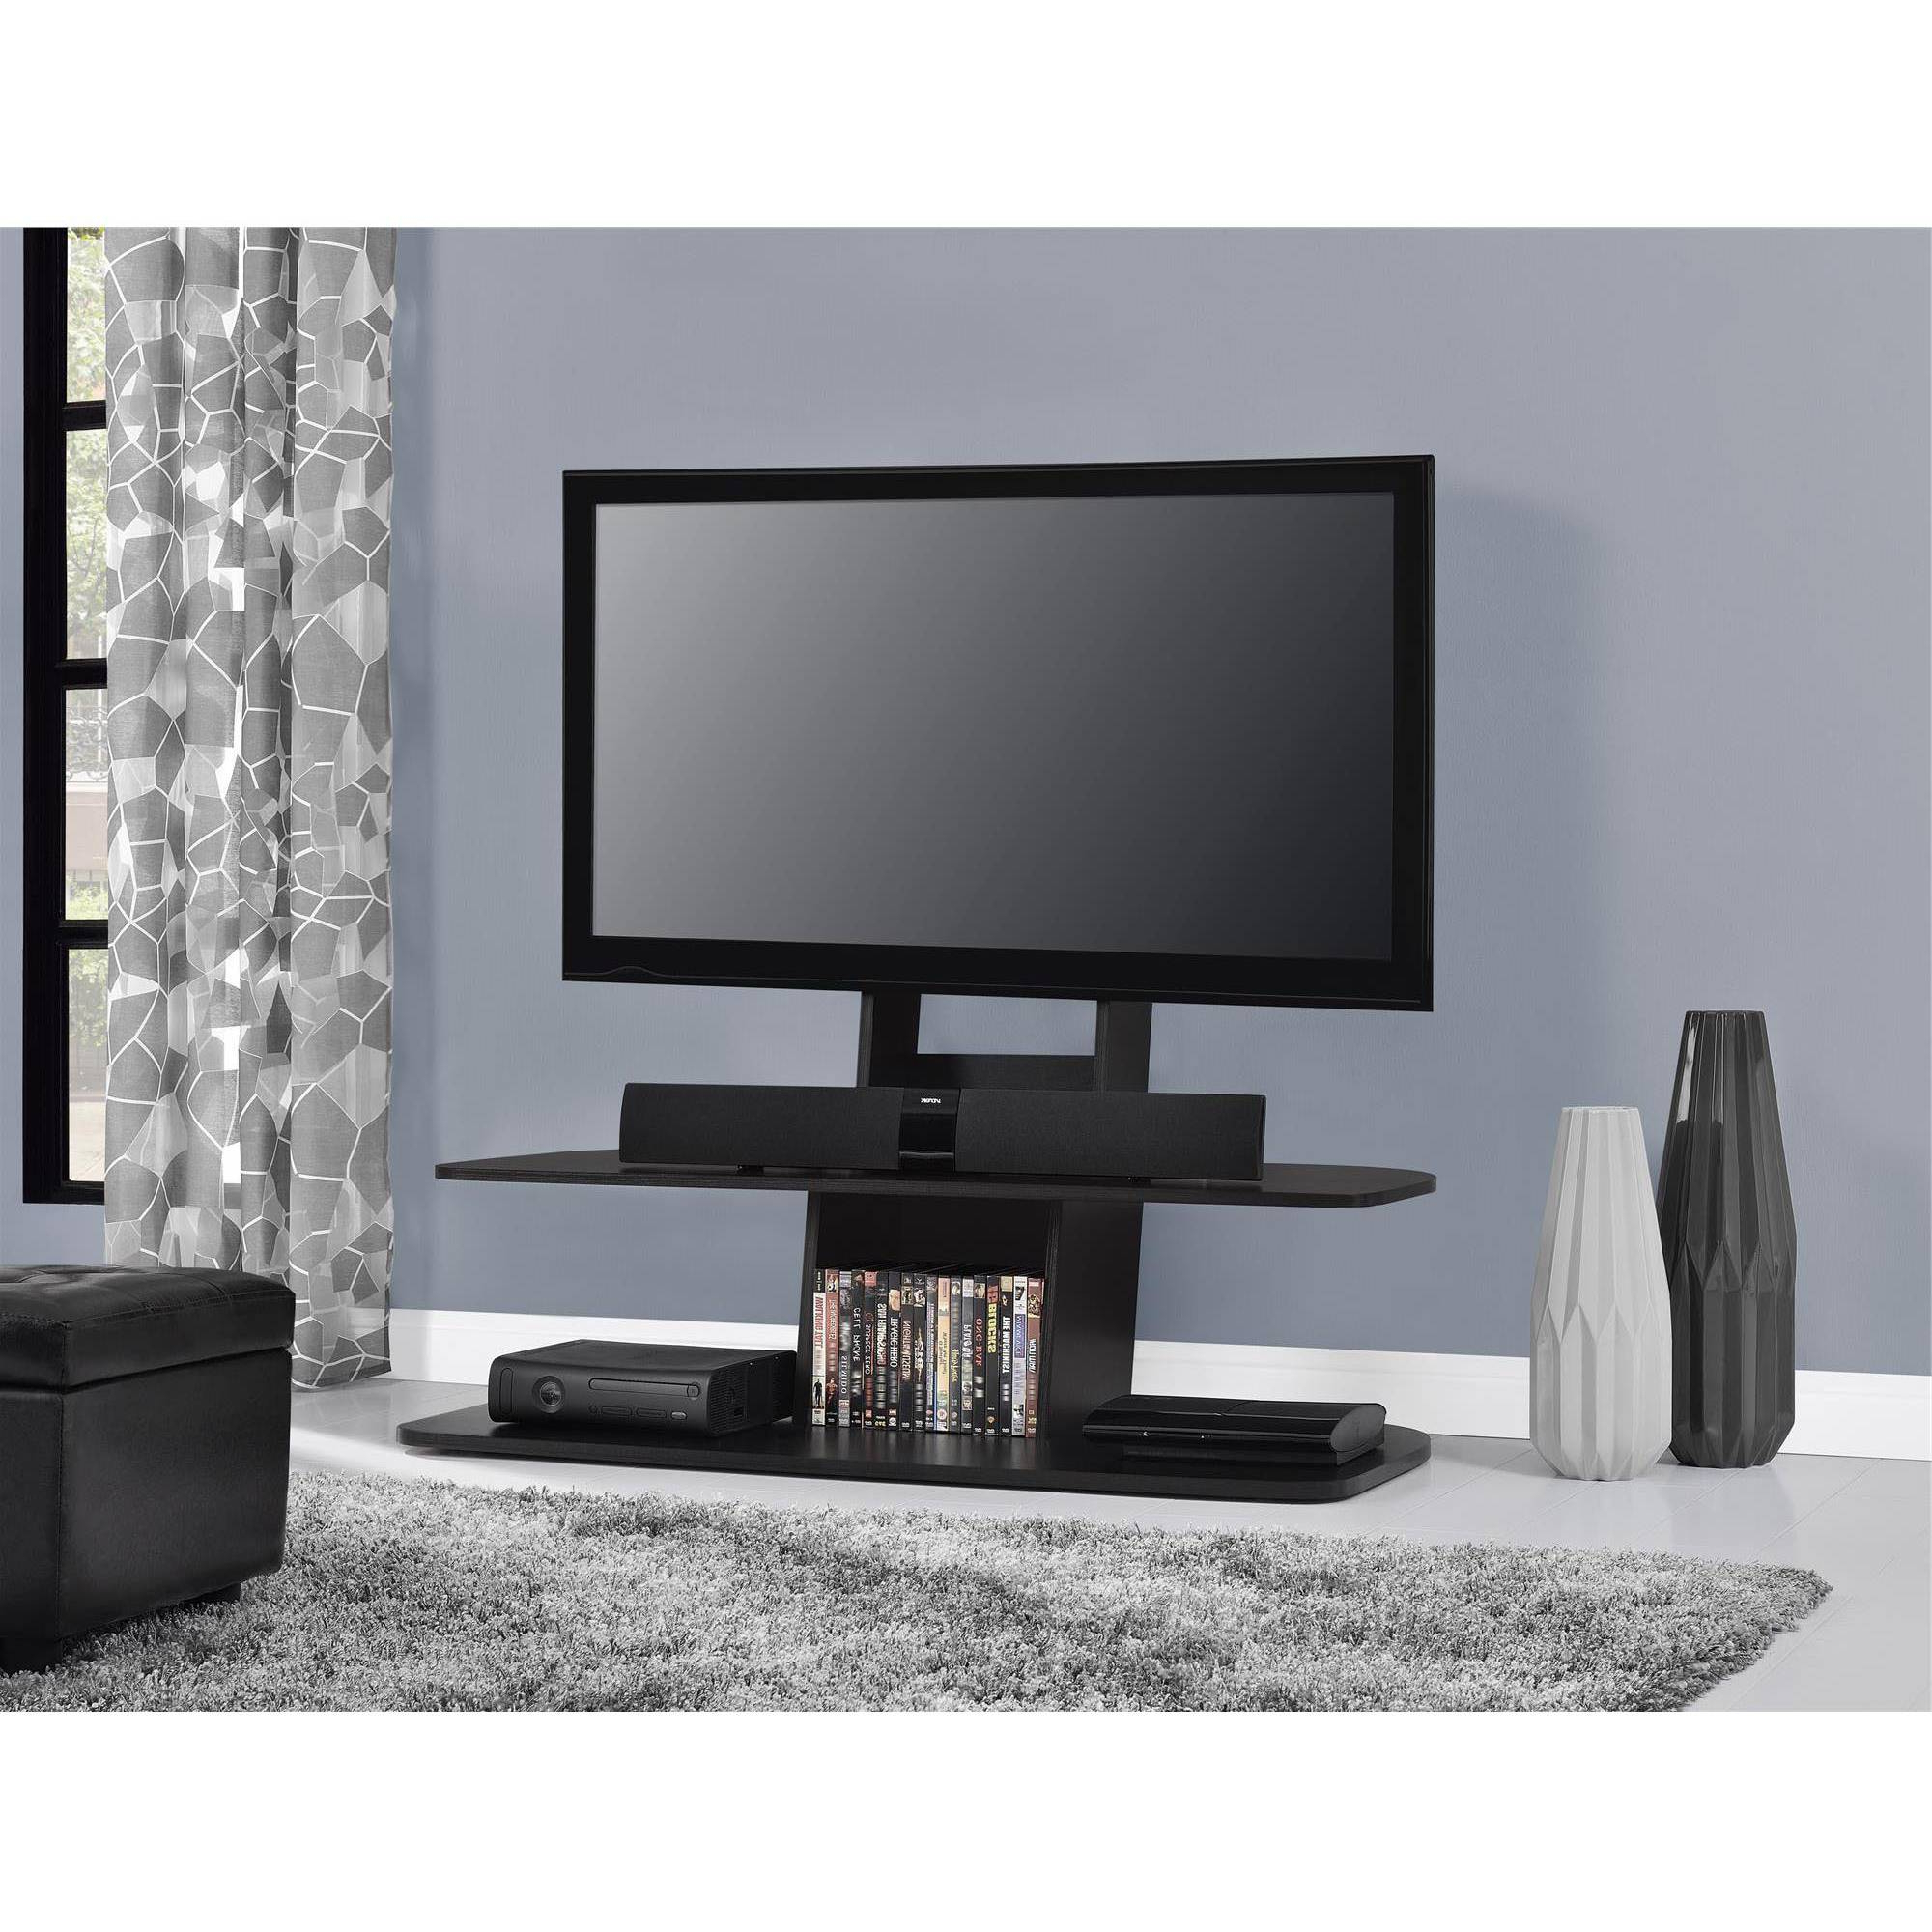 White Tv Stand 65 Inch Jigsy Low Tv Stand Modern Grey Finish For Melrose Barnhouse Brown 65 Inch Lowboy Tv Stands (Gallery 7 of 10)